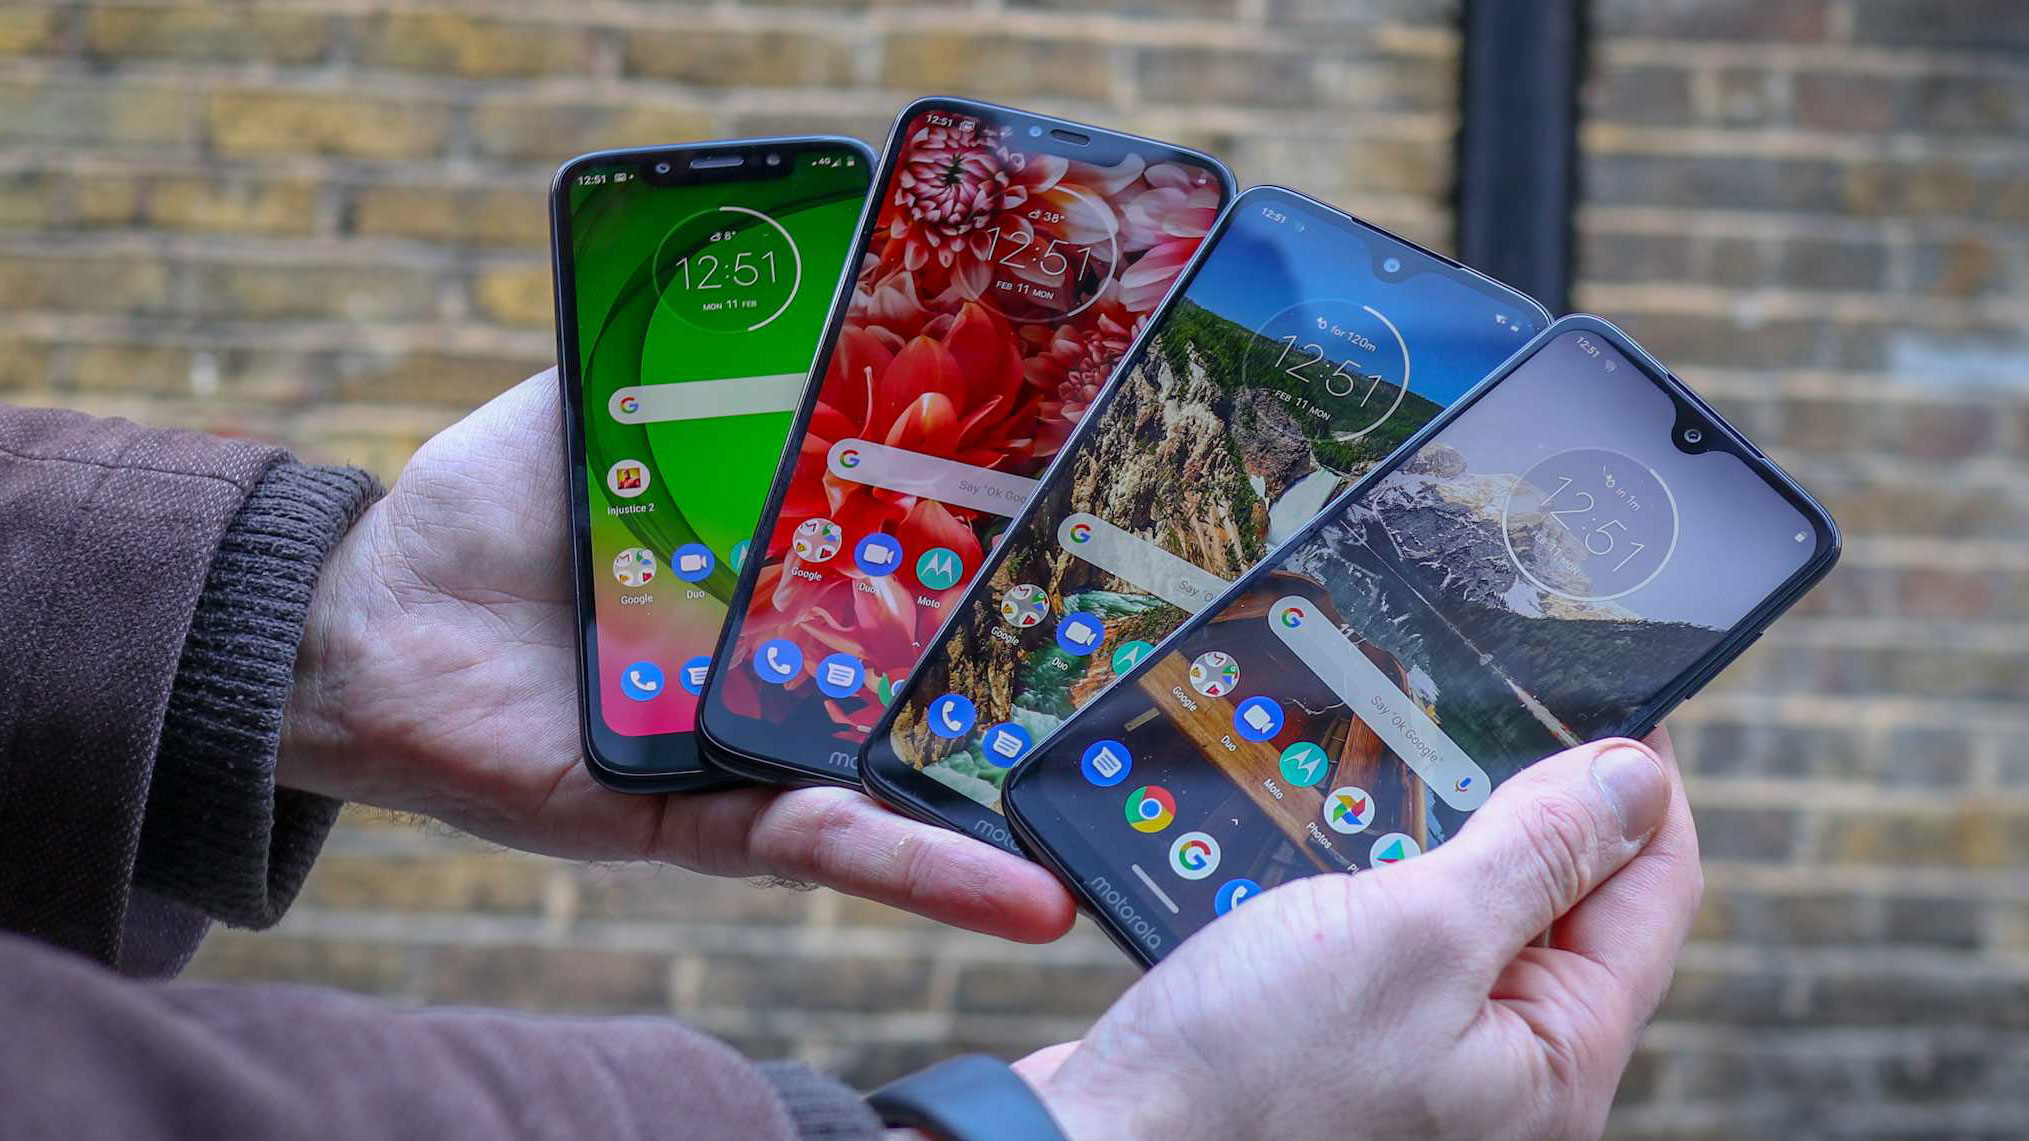 Moto G8 release date, price, news and leaks